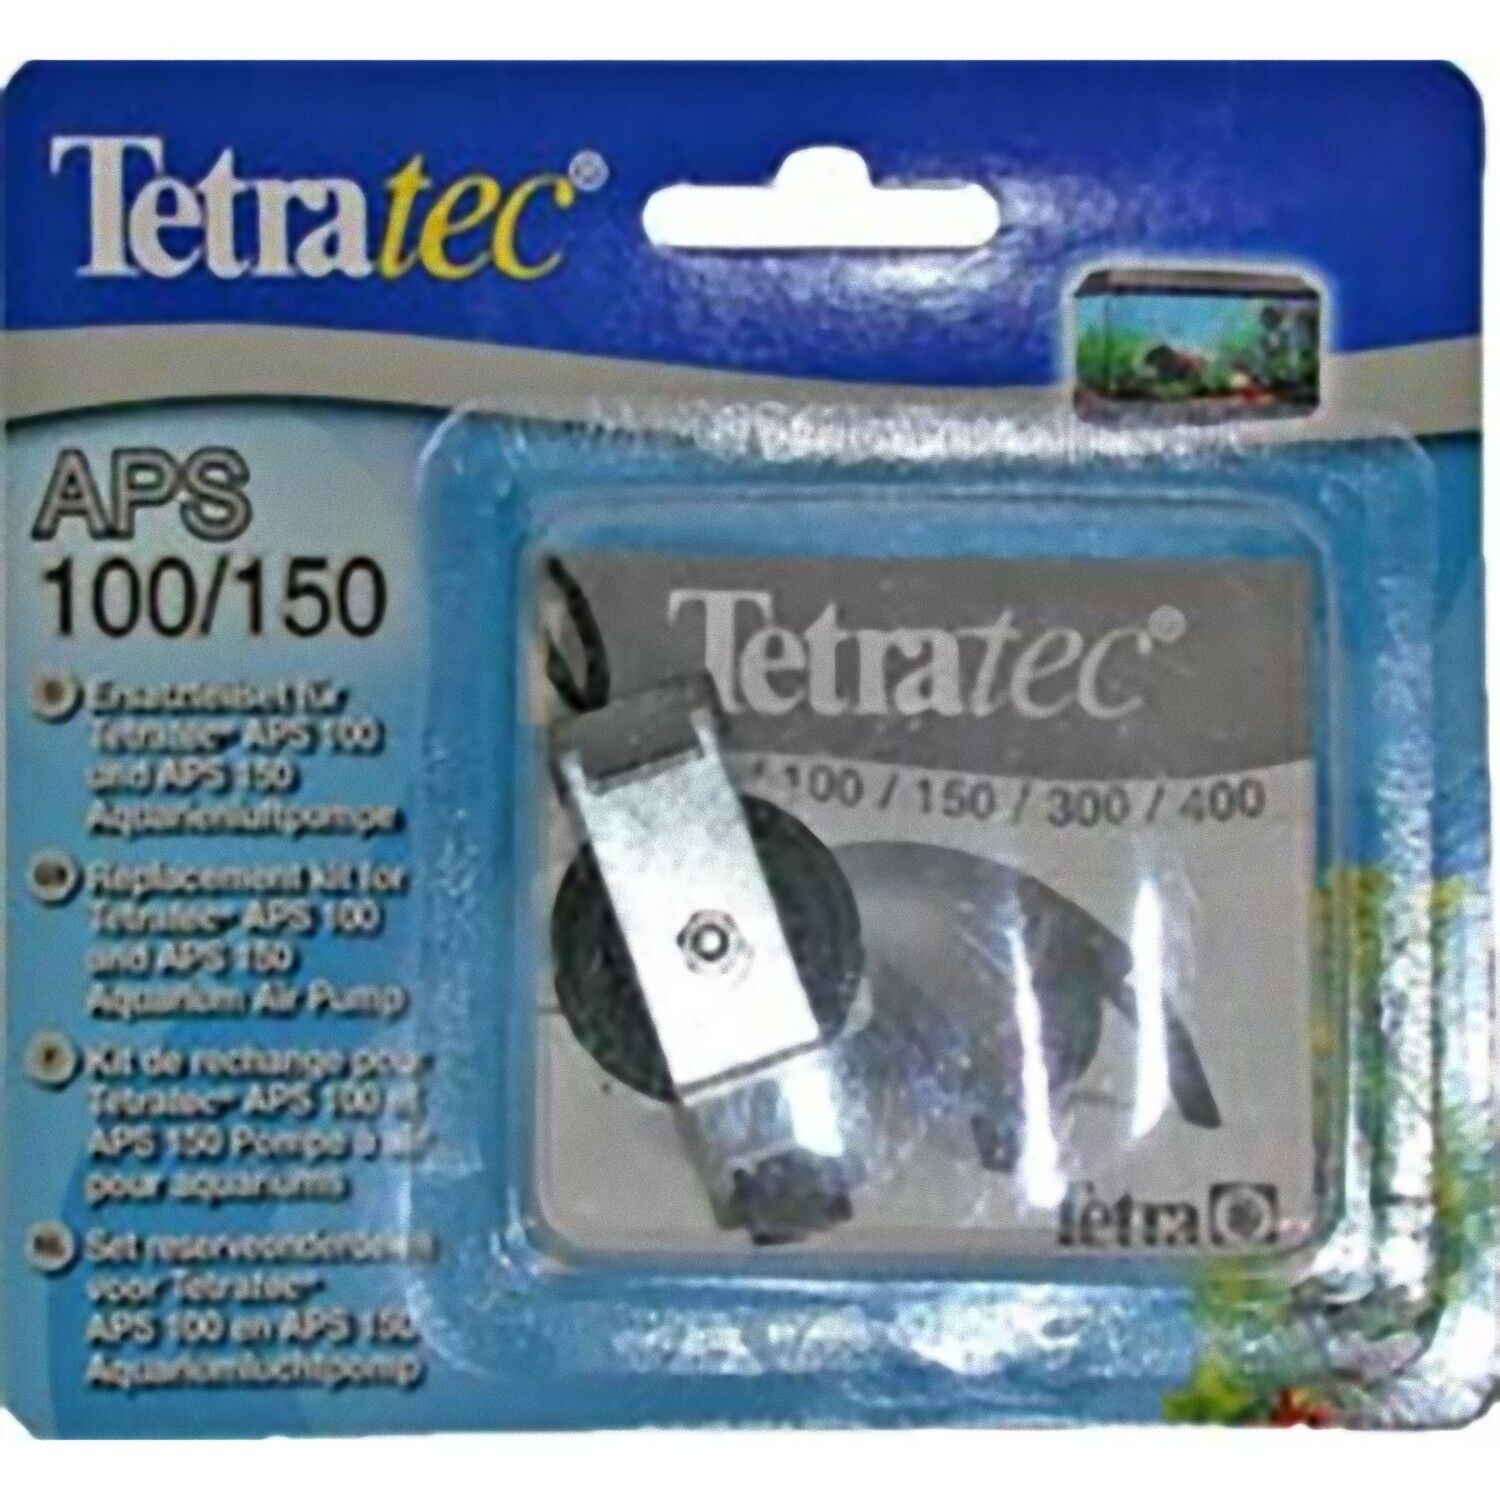 TetraTec Spares Kit for APS100 APS 100 Air Pump